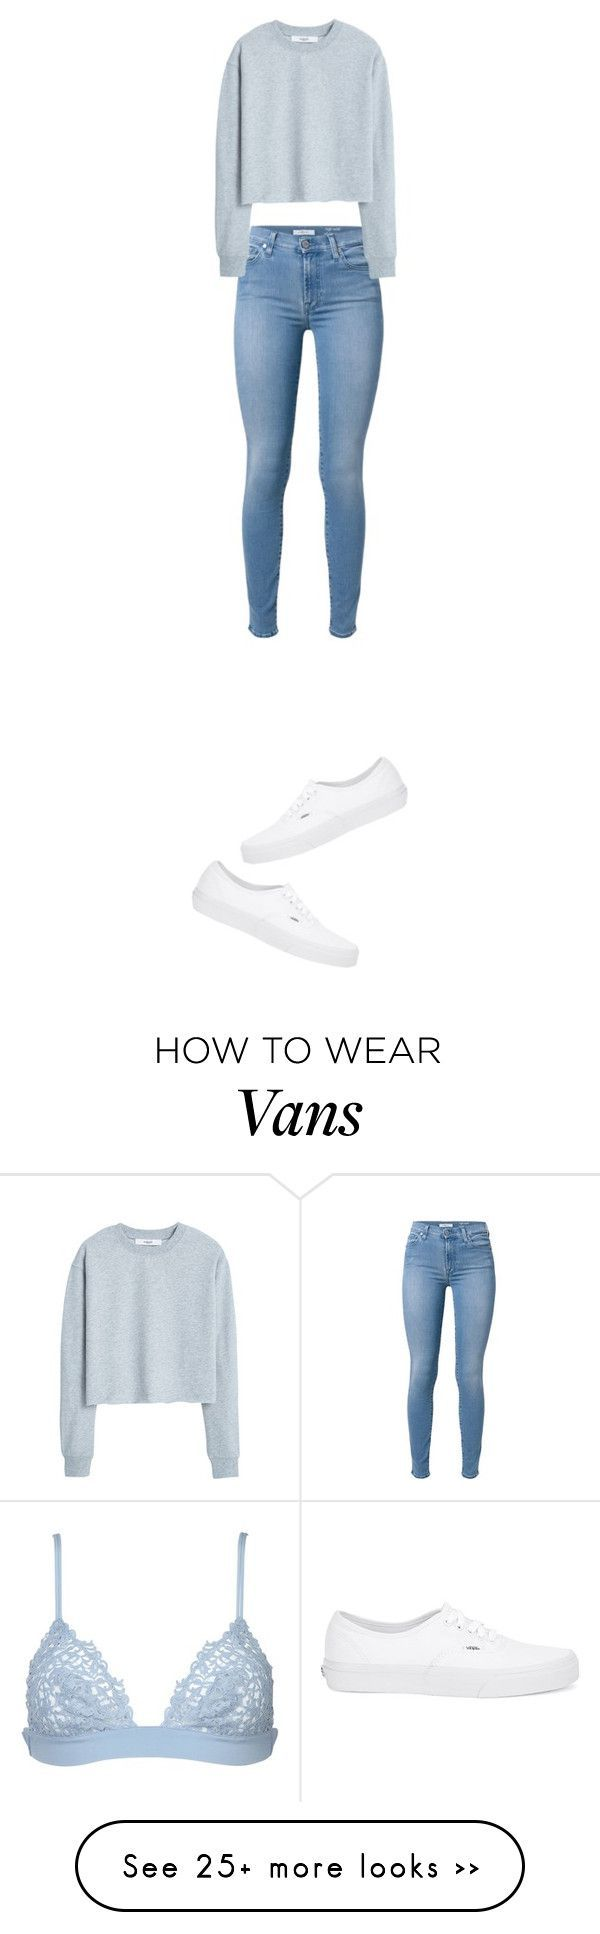 how-to-wear-crop-tops-8-best-outfits-7 how to wear crop tops 8 best outfits